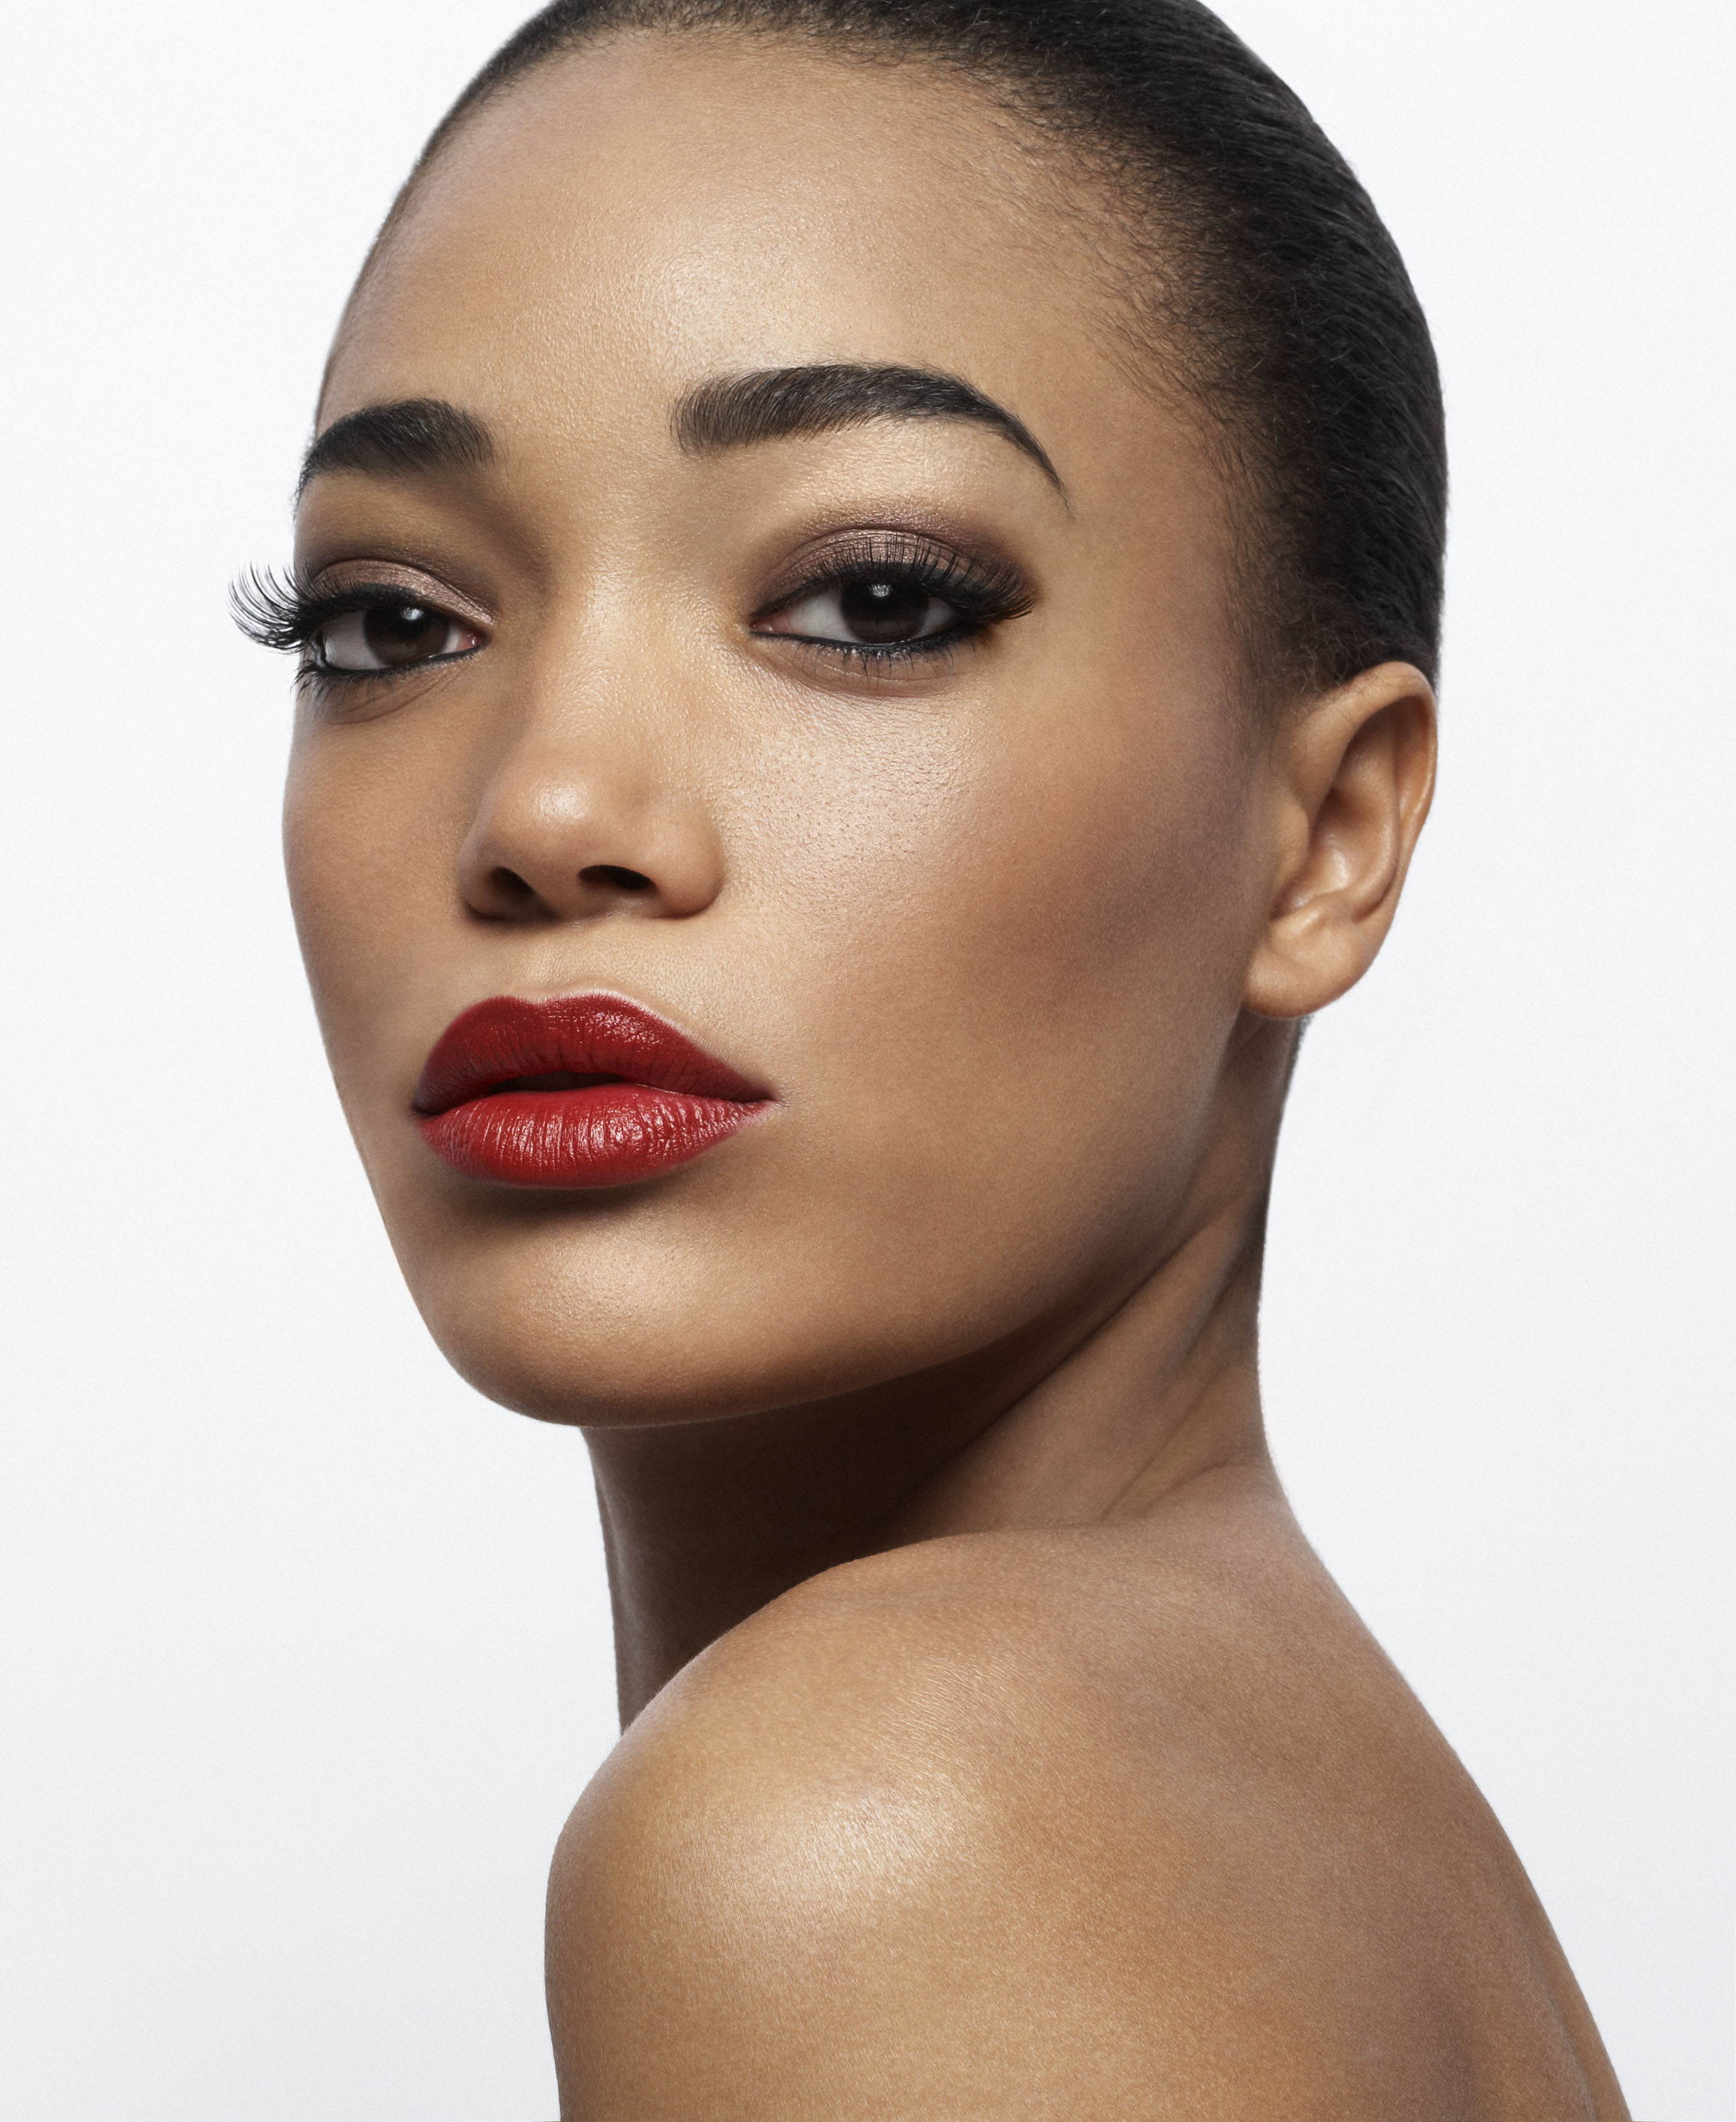 Image result for black lady red lips